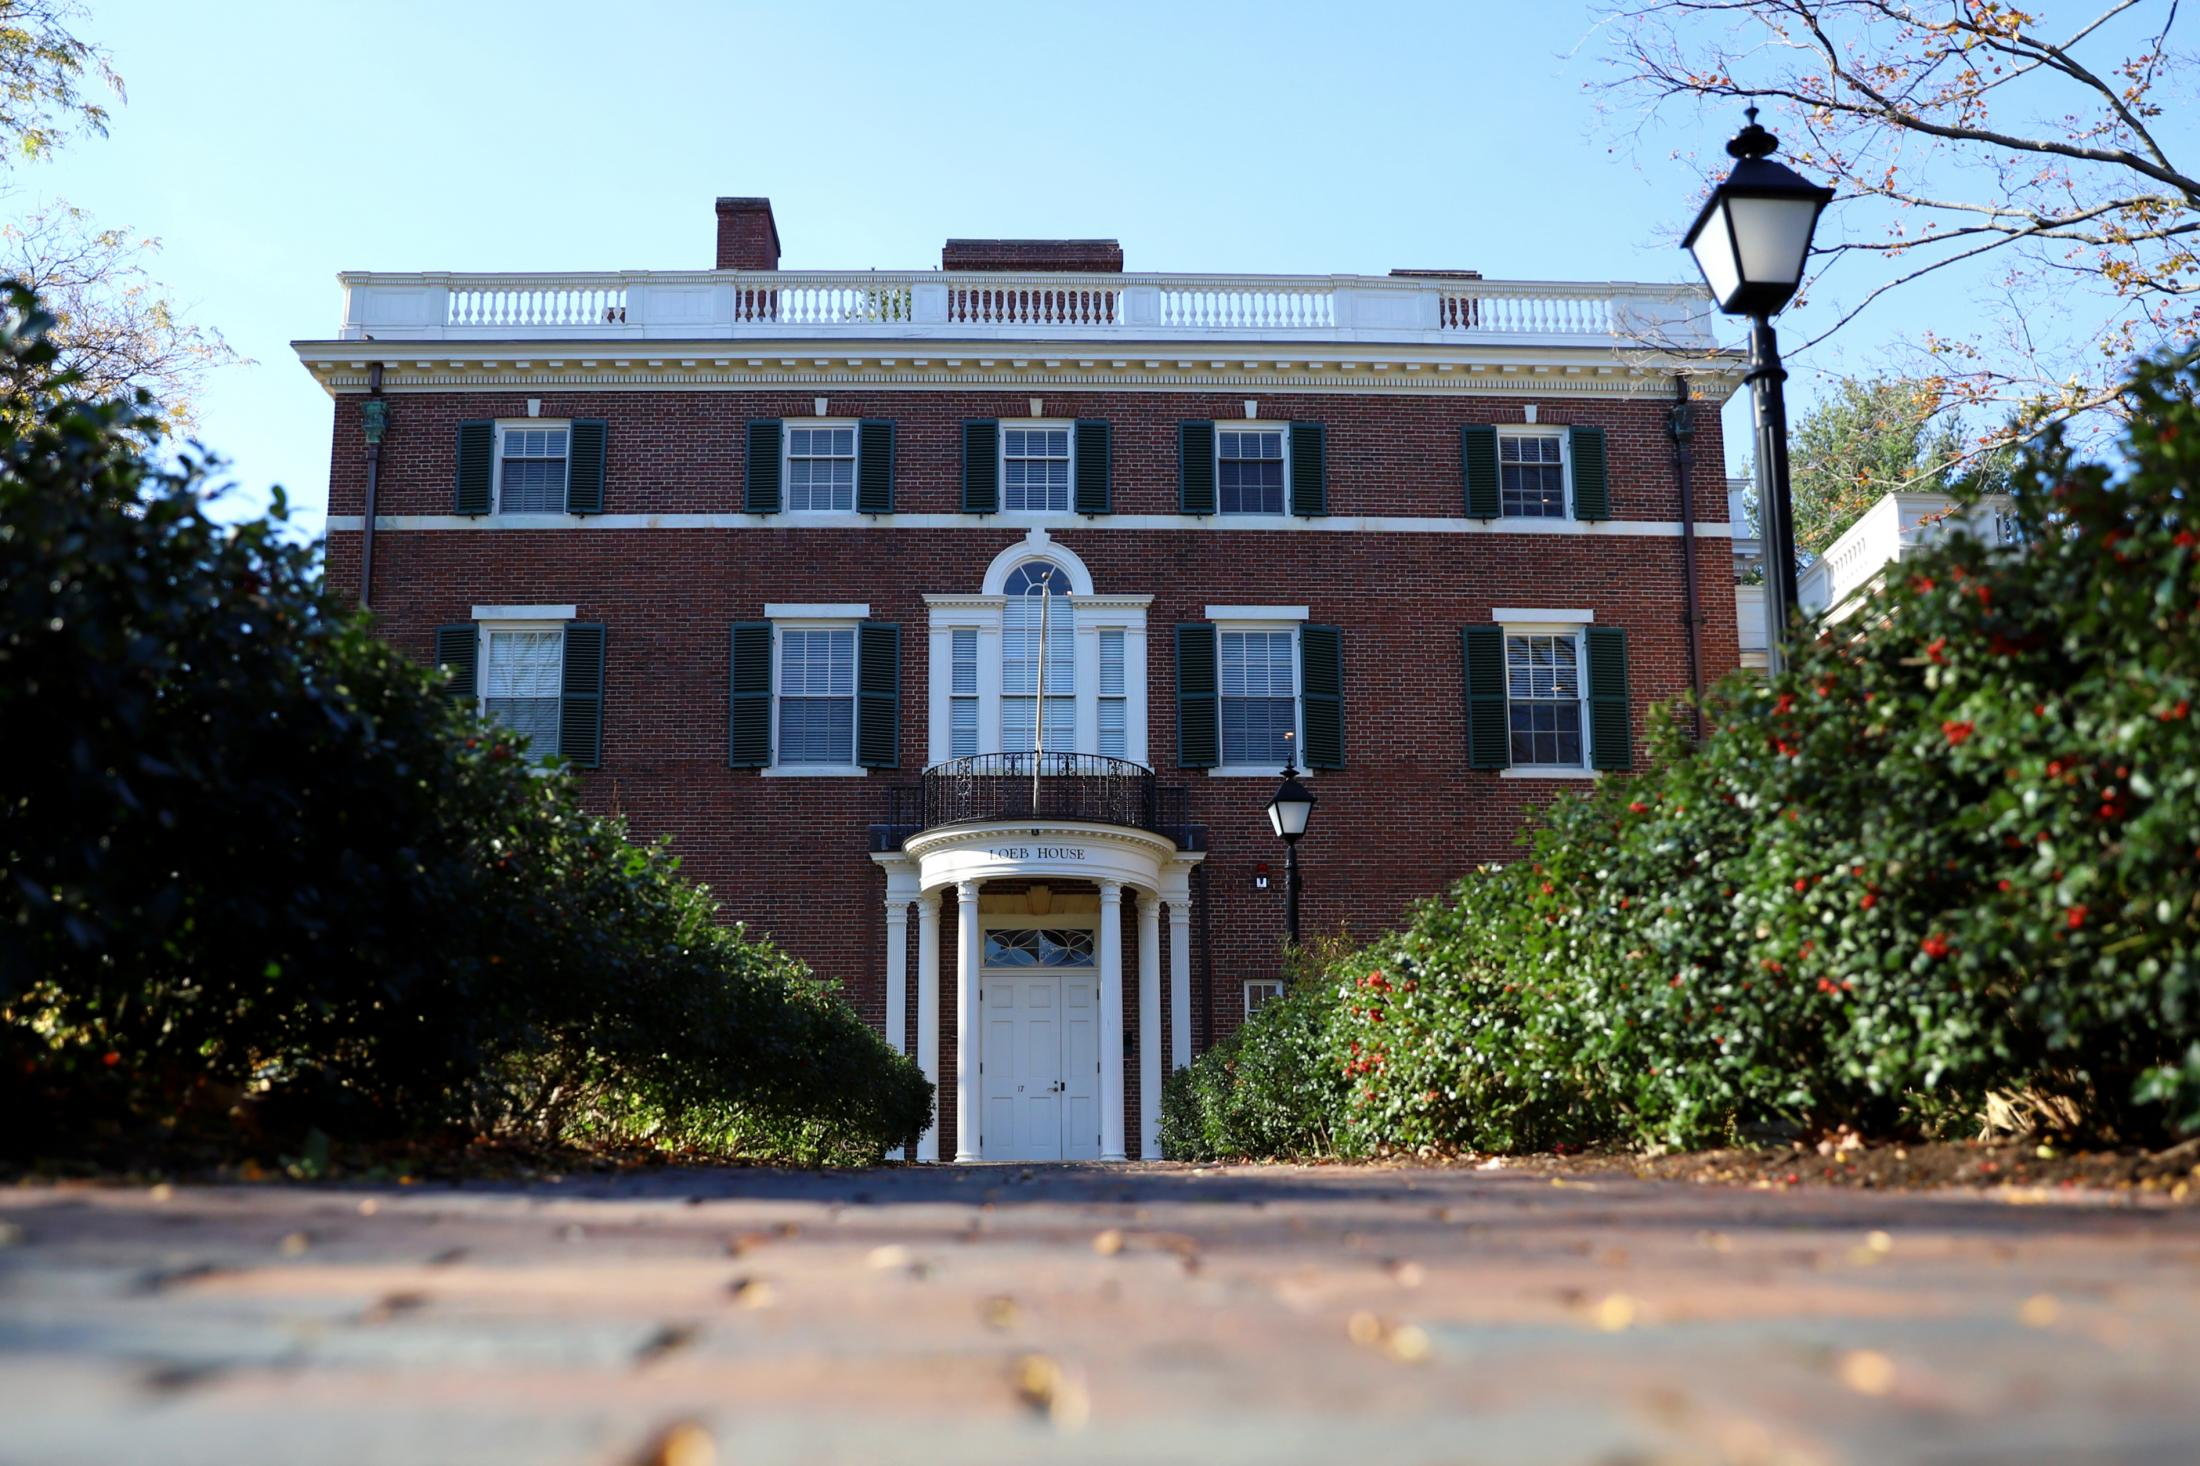 Loeb House is the home of Harvard's Governing Boards and their administrative offices.